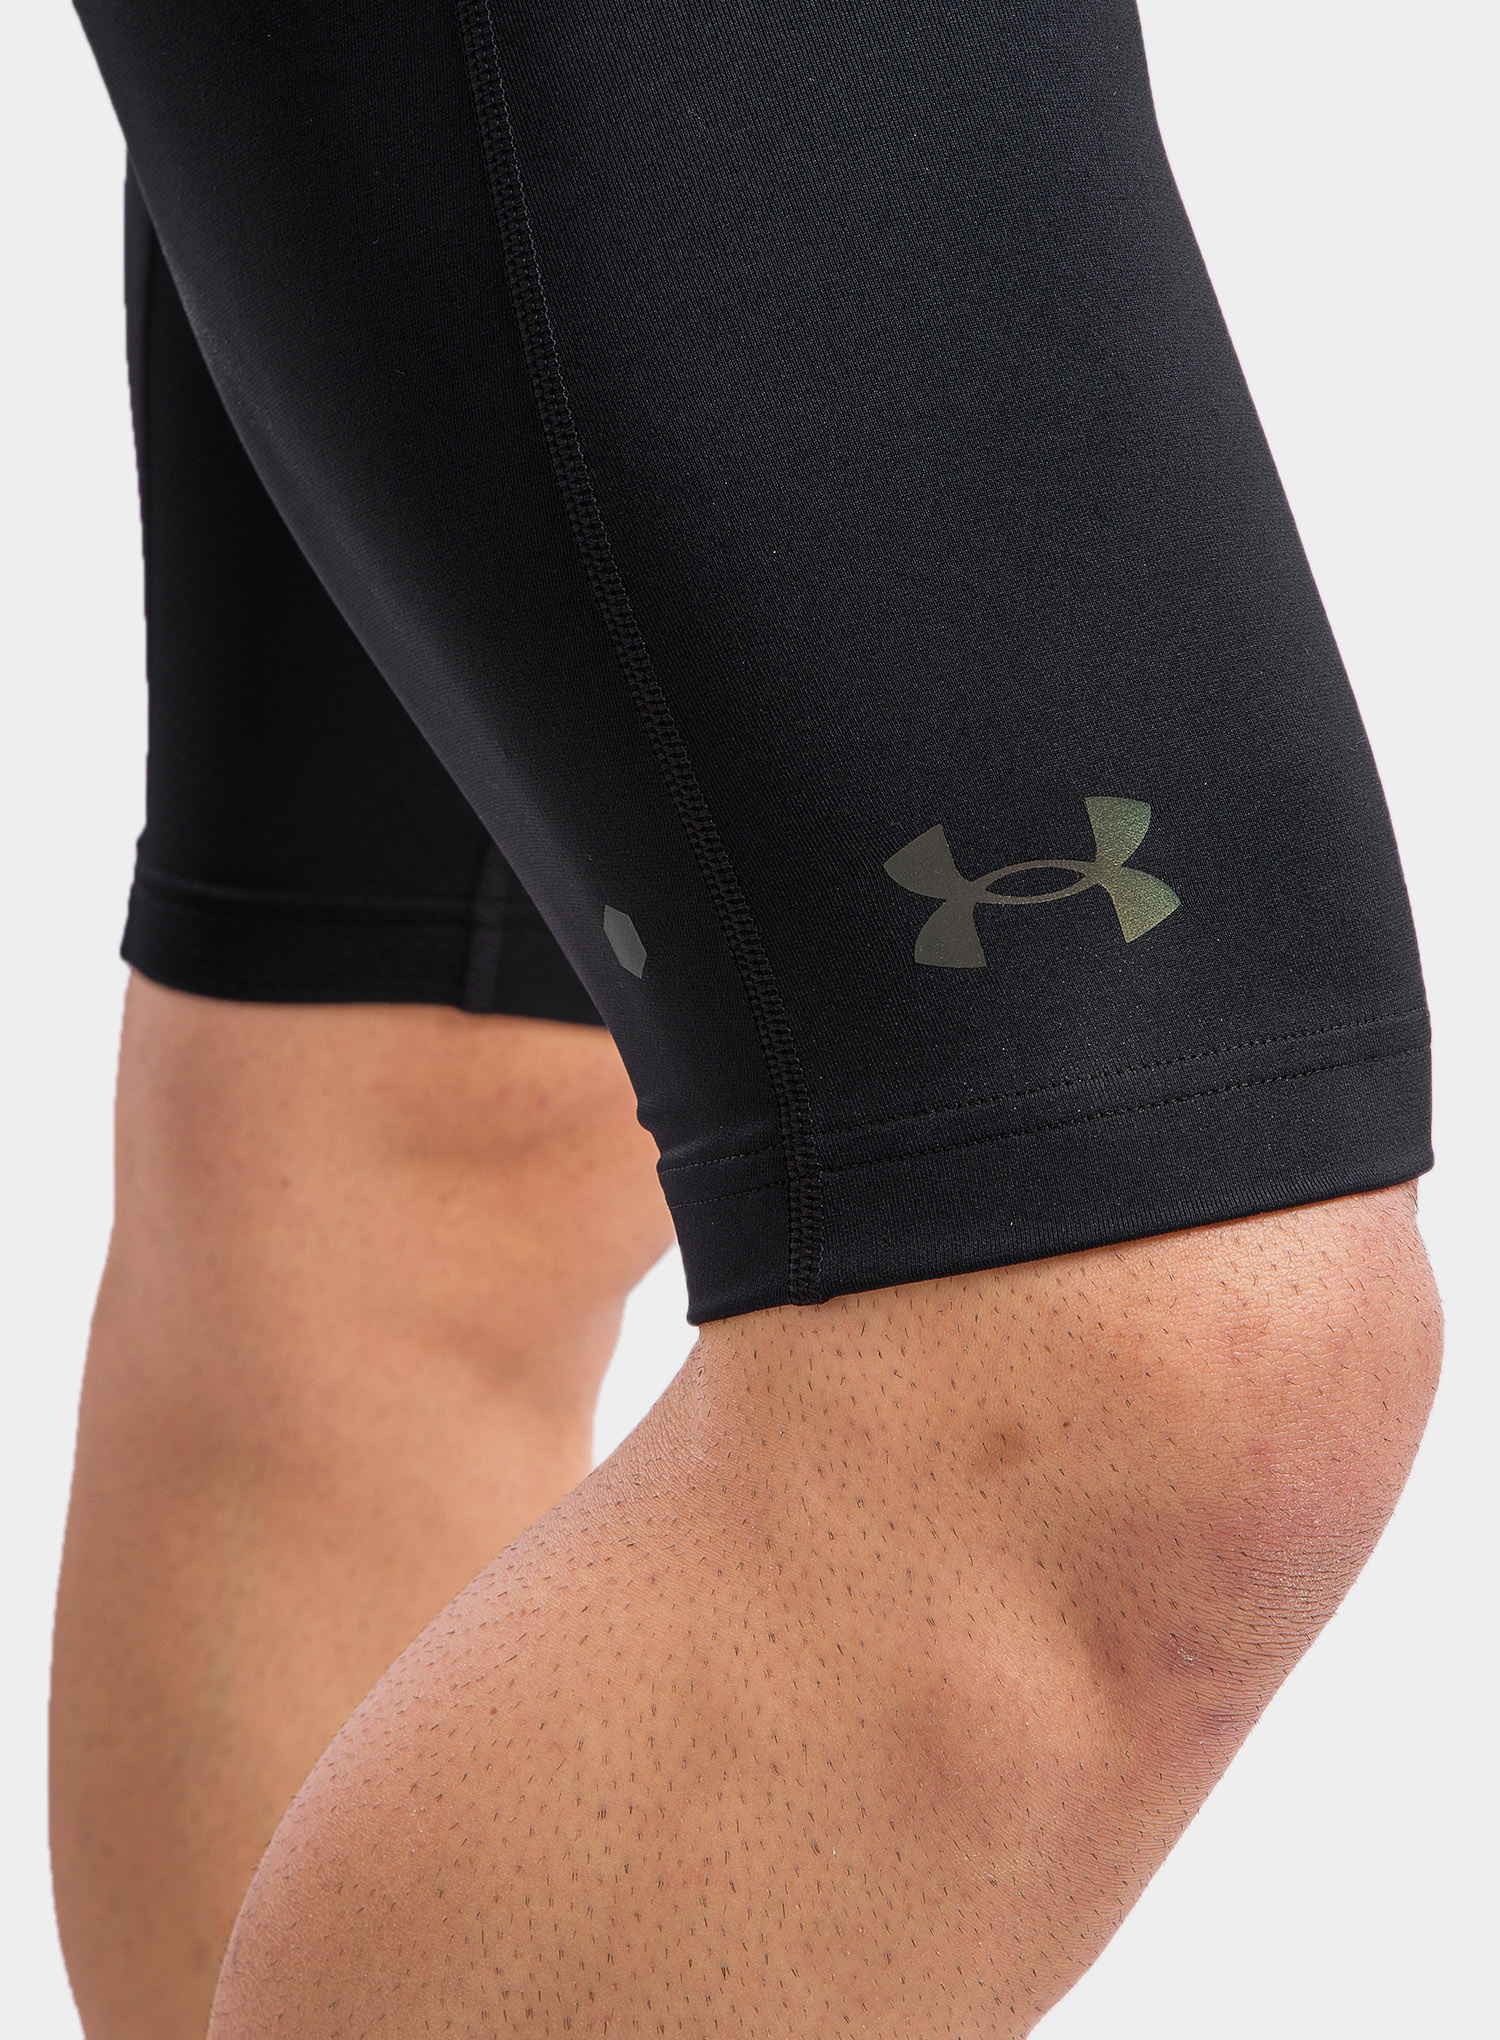 Spodenki Under Armour HG Rush 2.0 Long Shorts - black/black - zdjęcie nr. 6